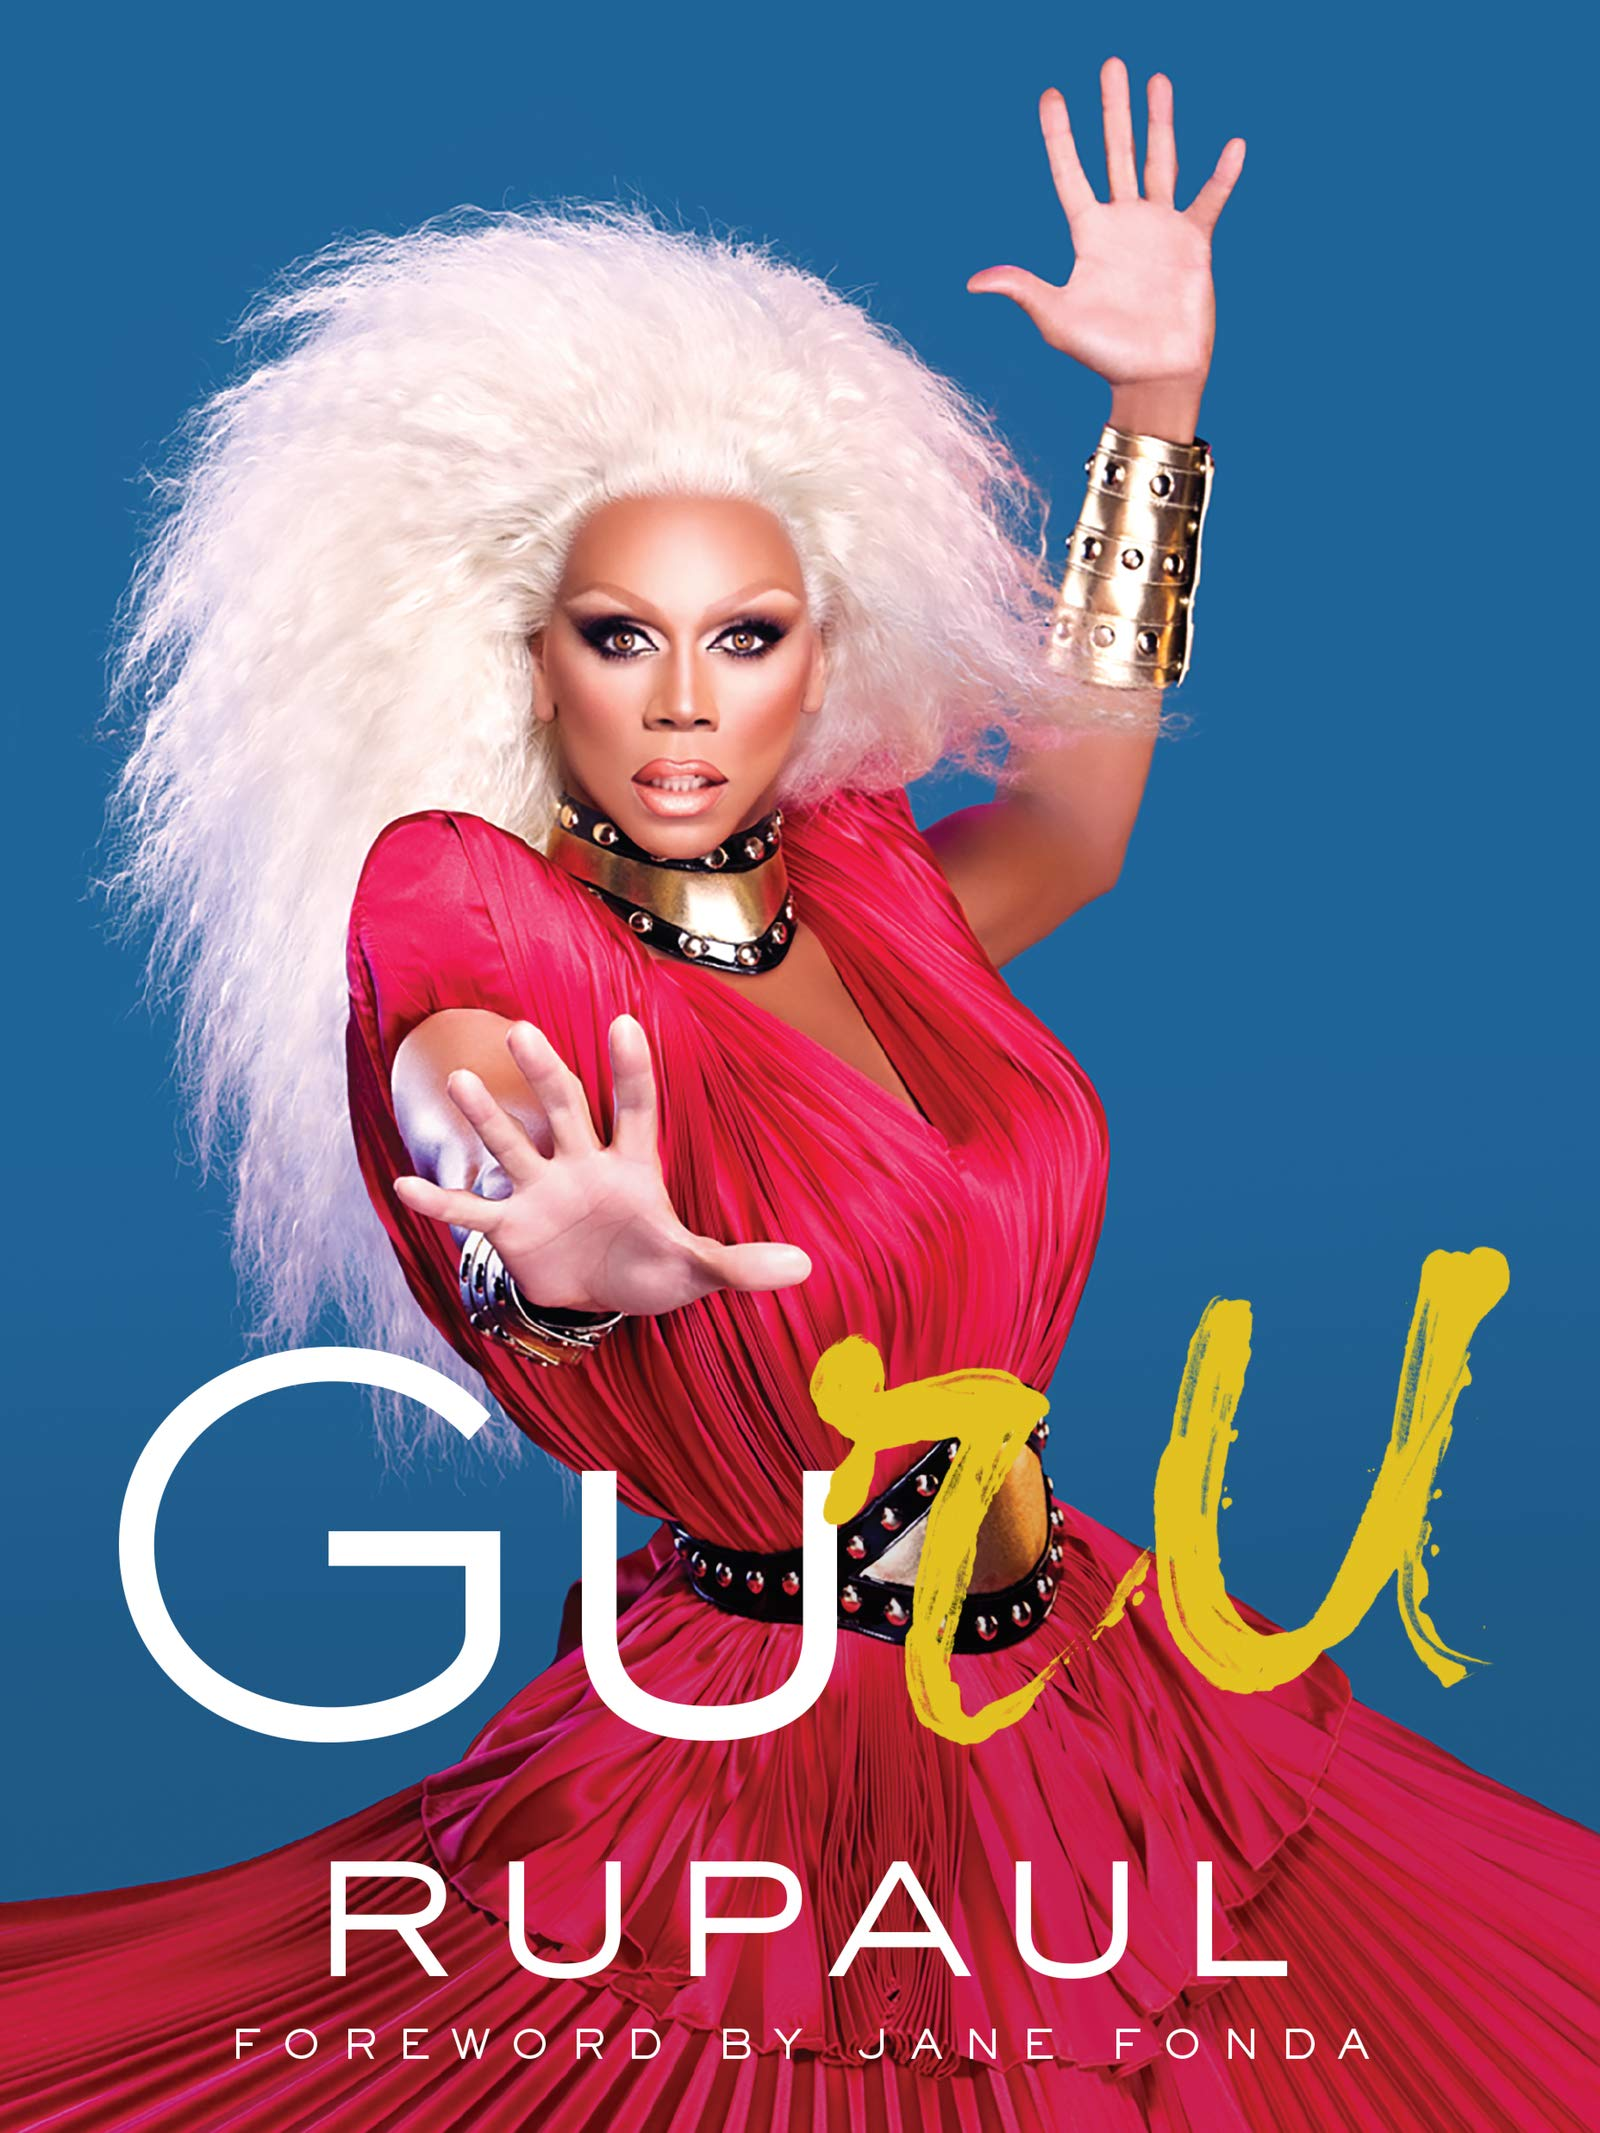 new rupaul book guru cover